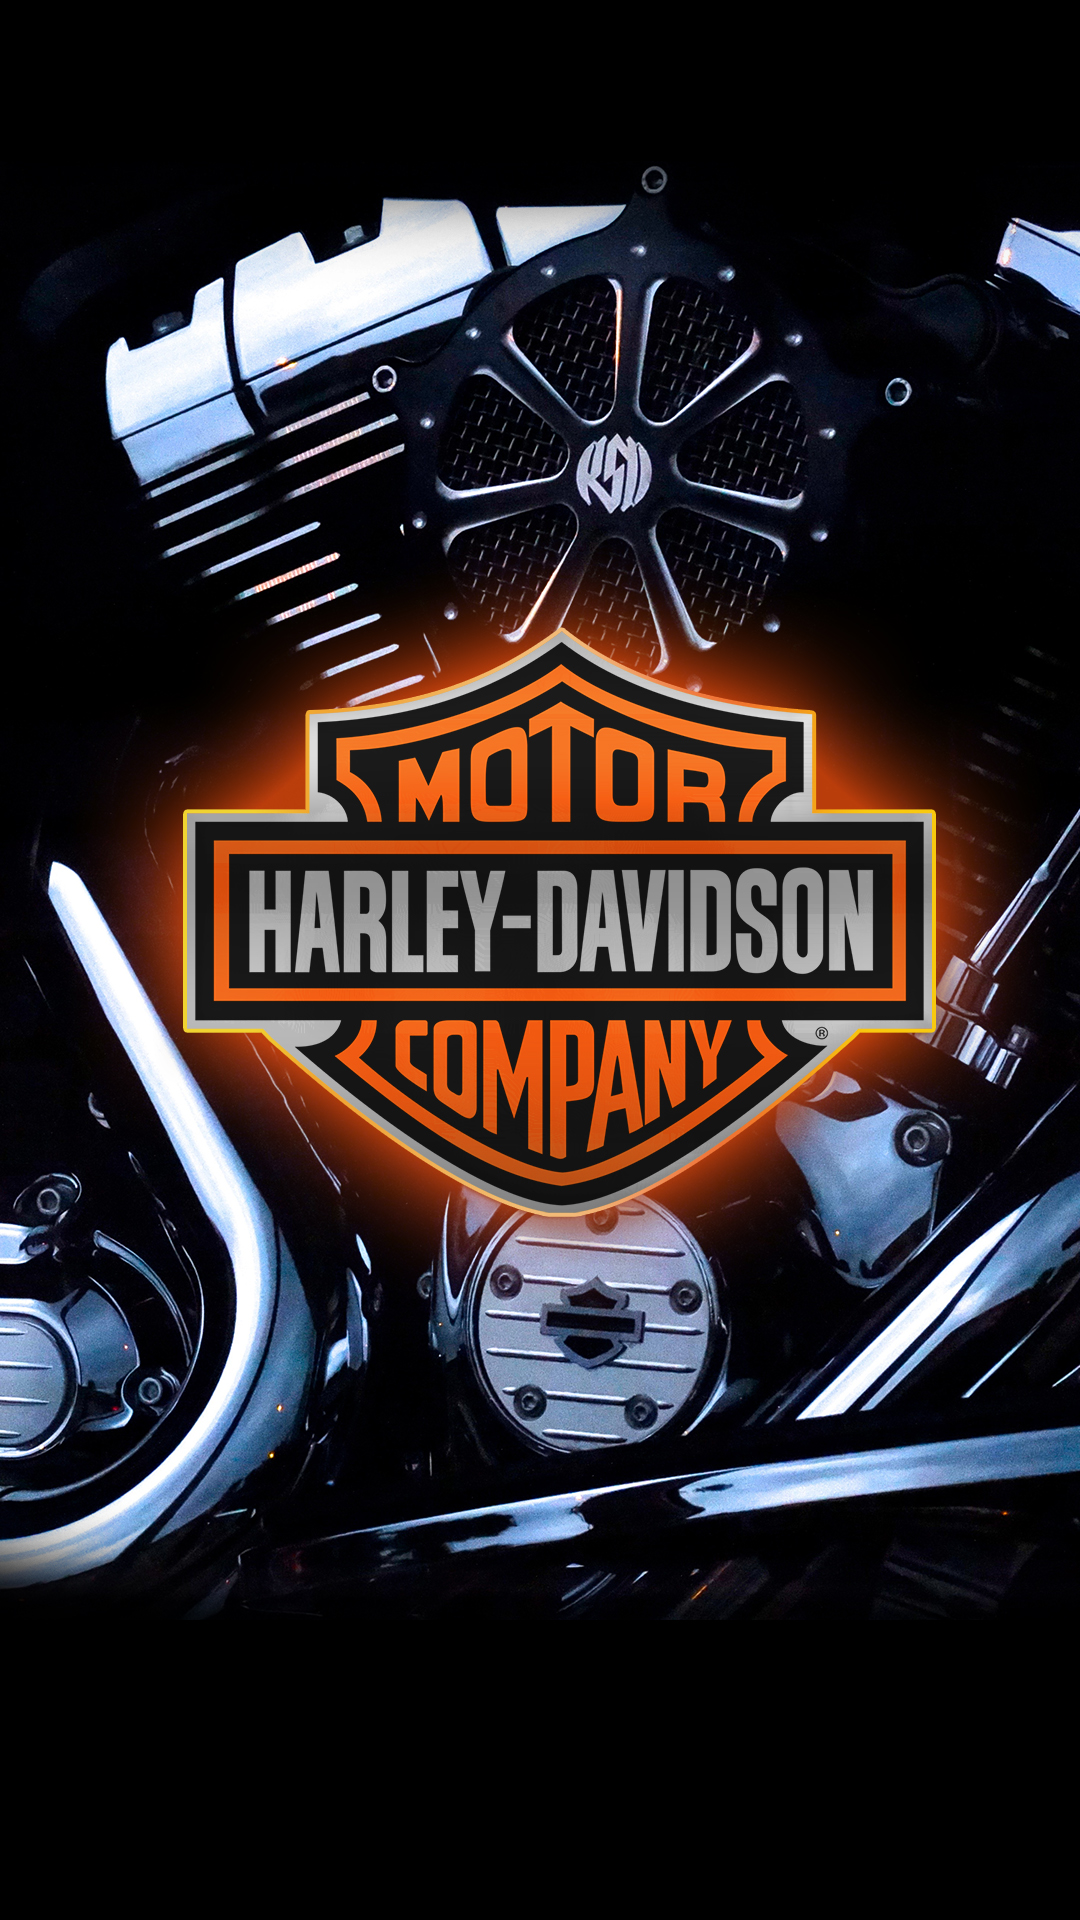 Harley Davidson 1080 x 1920 HD Wallpaper 1080x1920